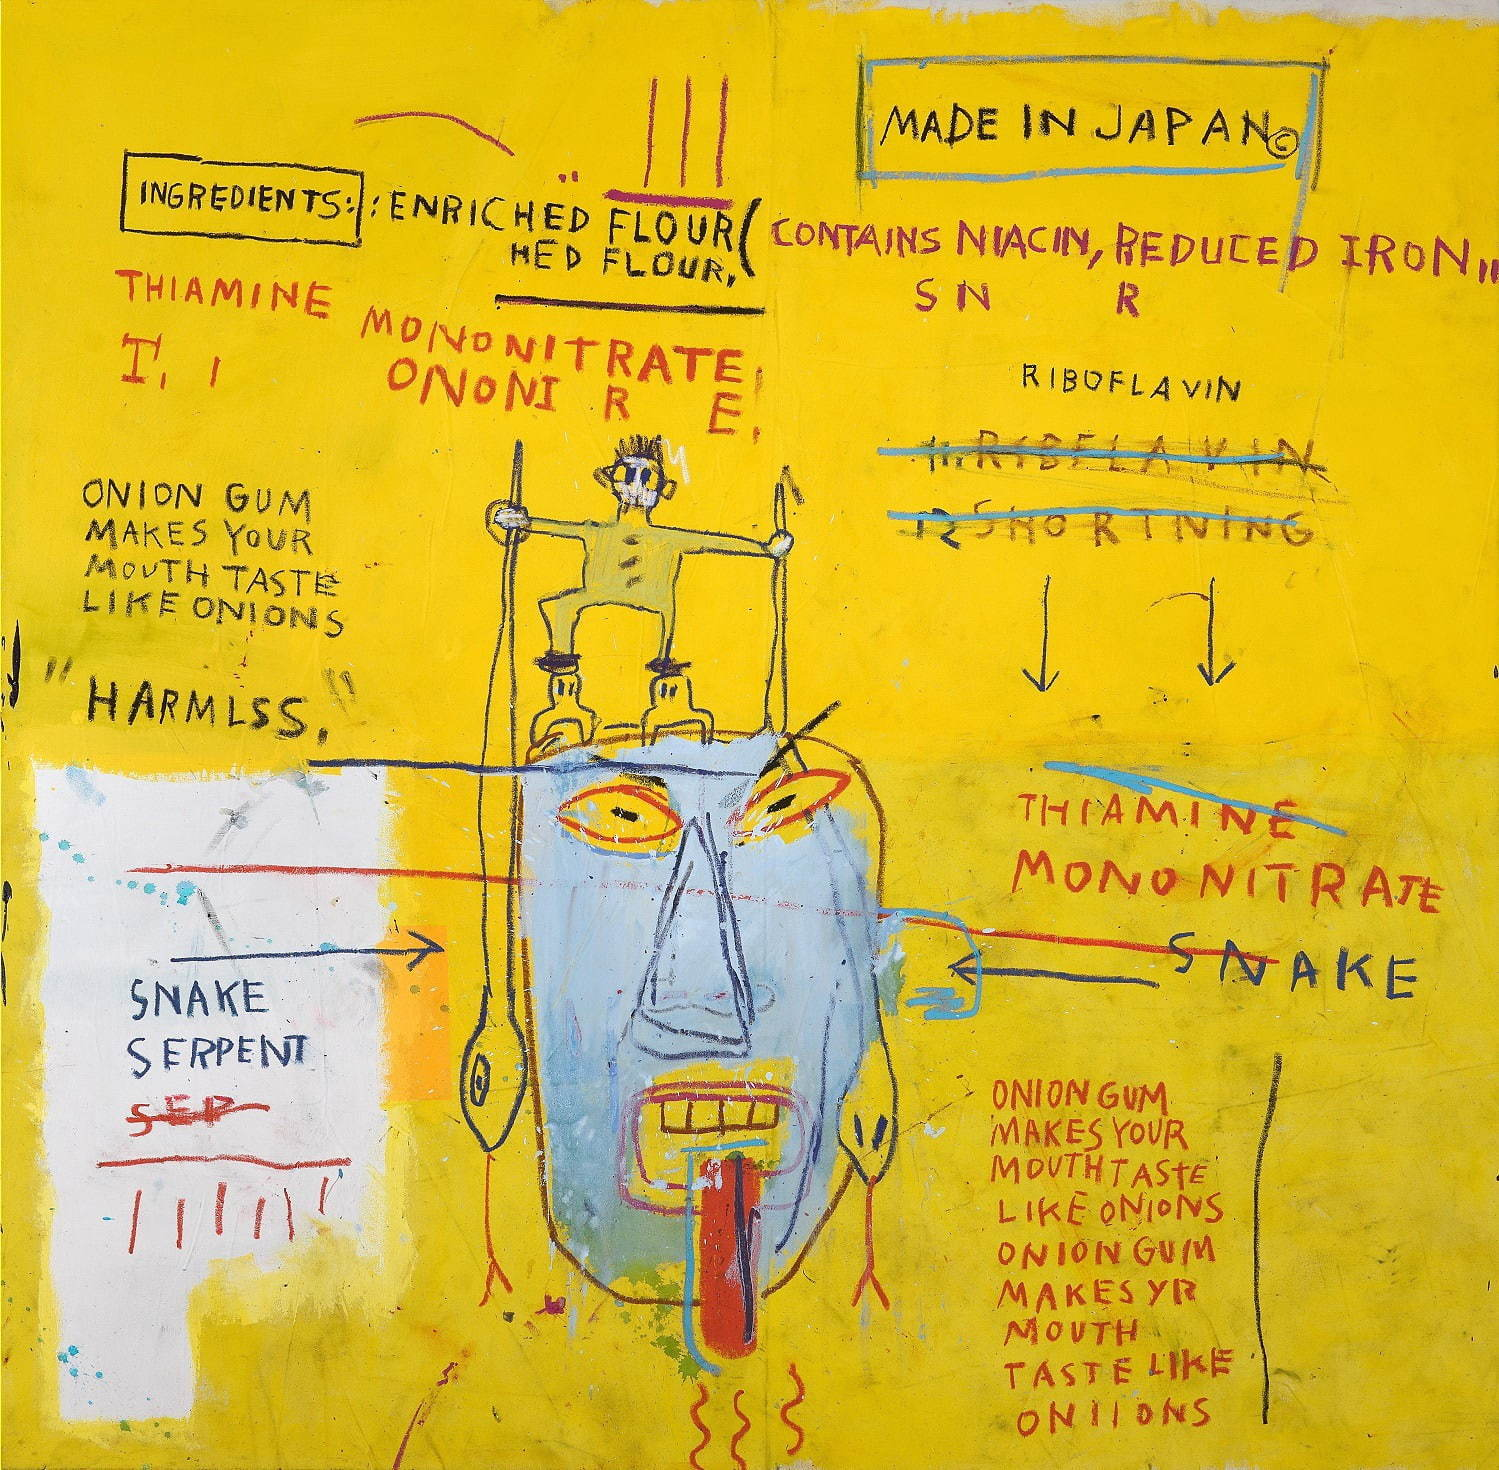 ジャン=ミシェル・バスキア